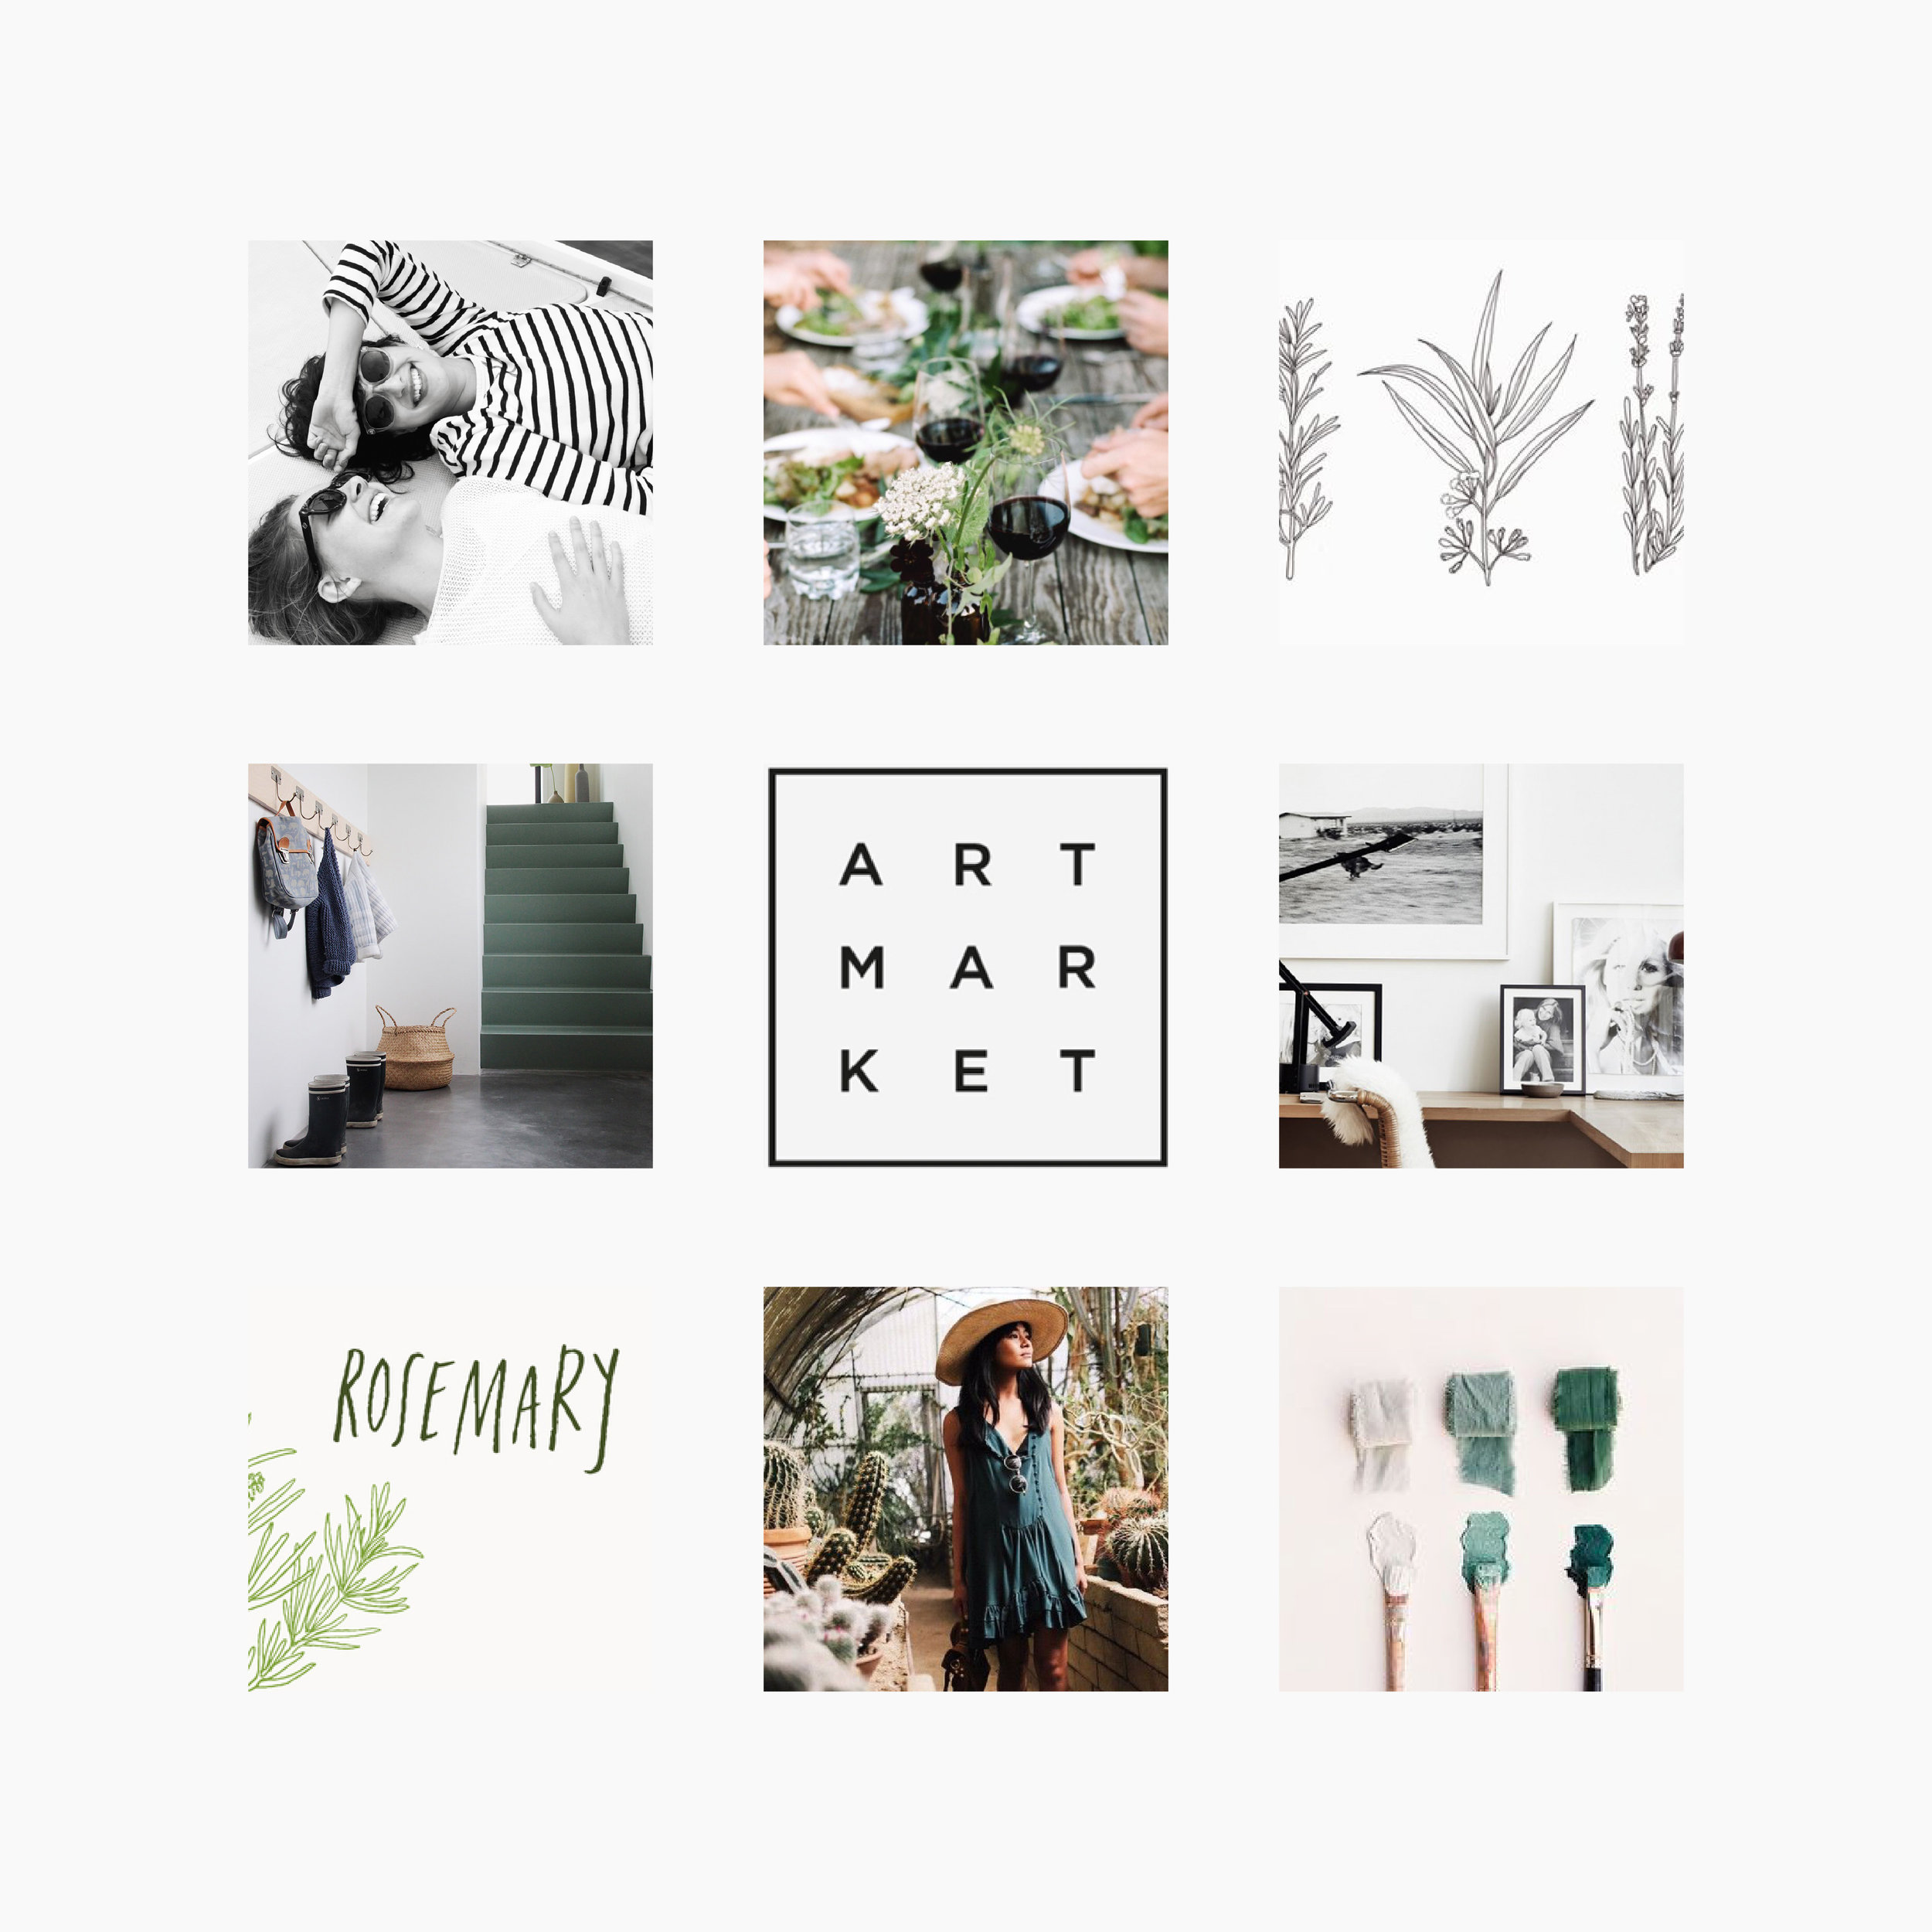 Made Market Mood Board / Letterform Creative